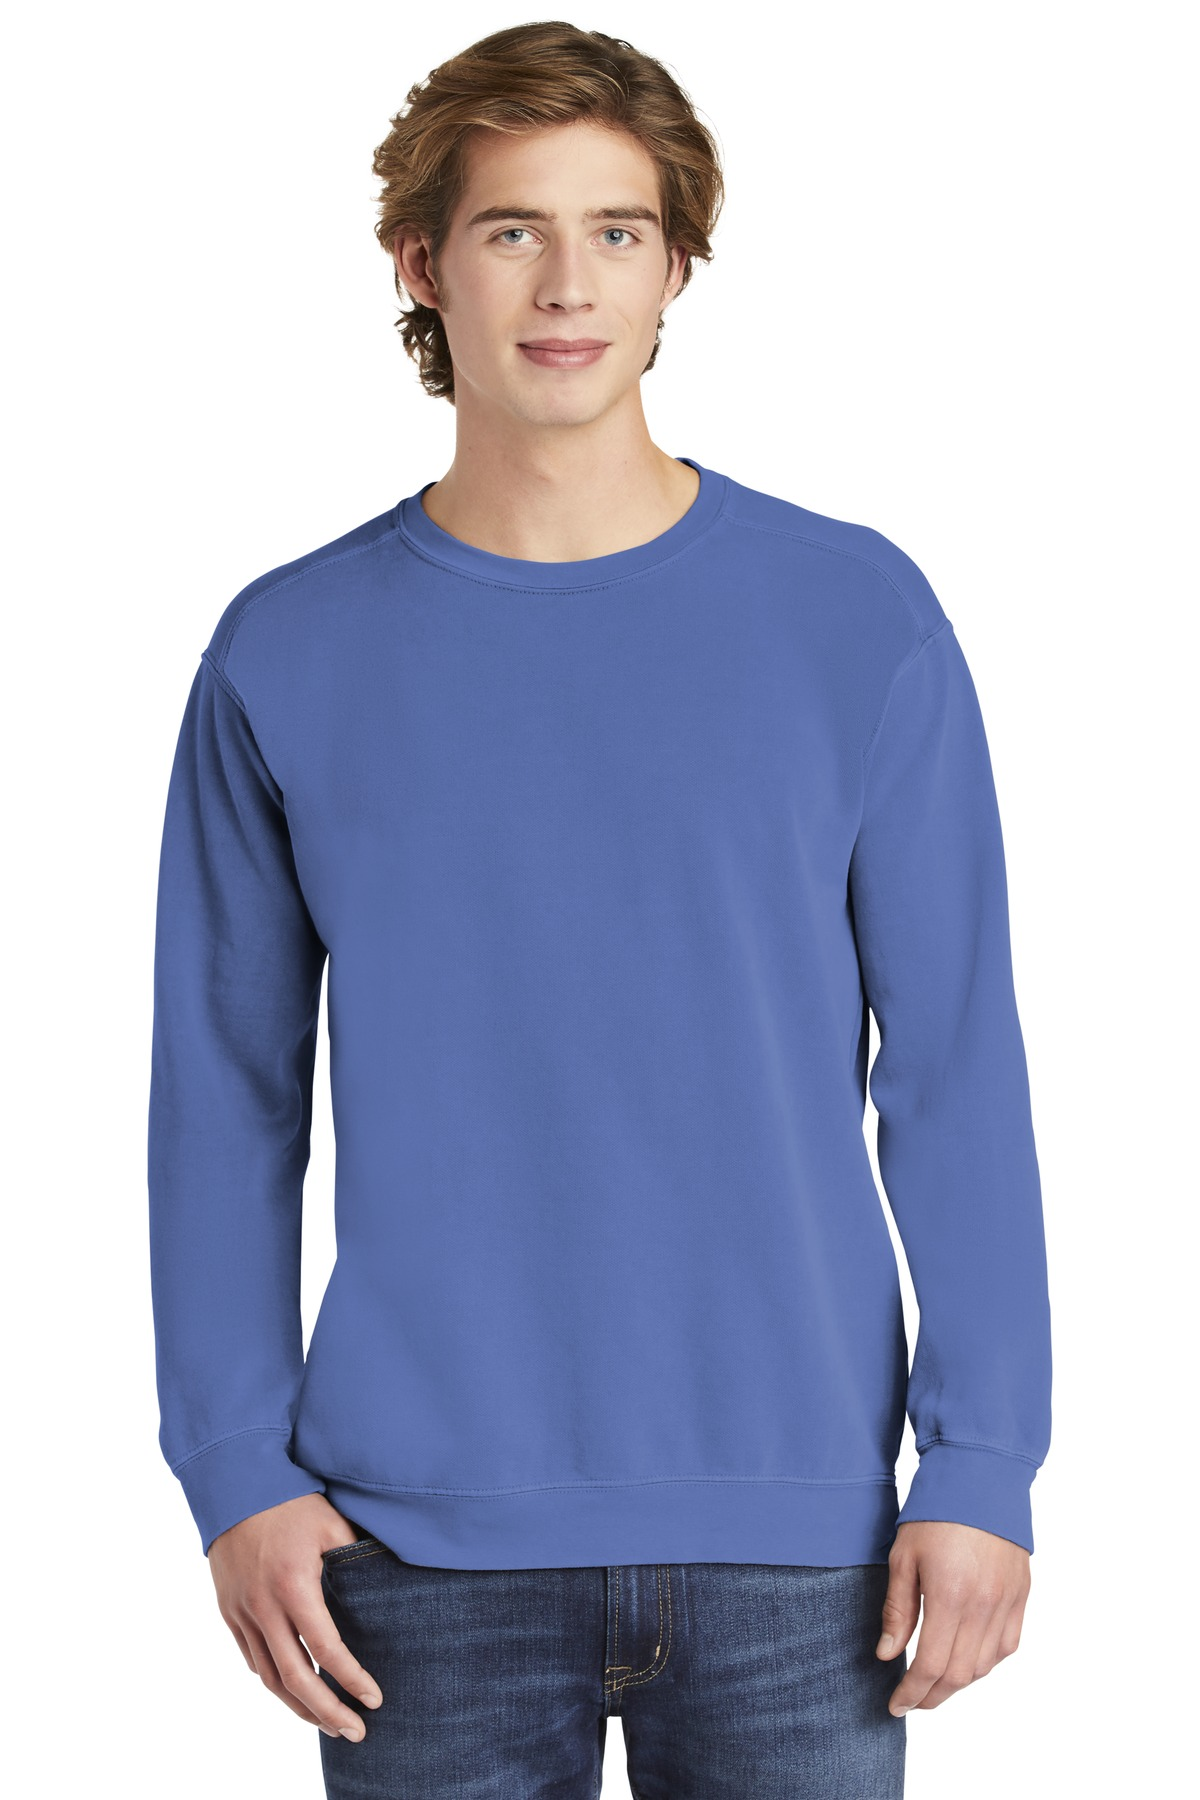 COMFORT COLORS  ®  Ring Spun Crewneck Sweatshirt. 1566 - Flo Blue